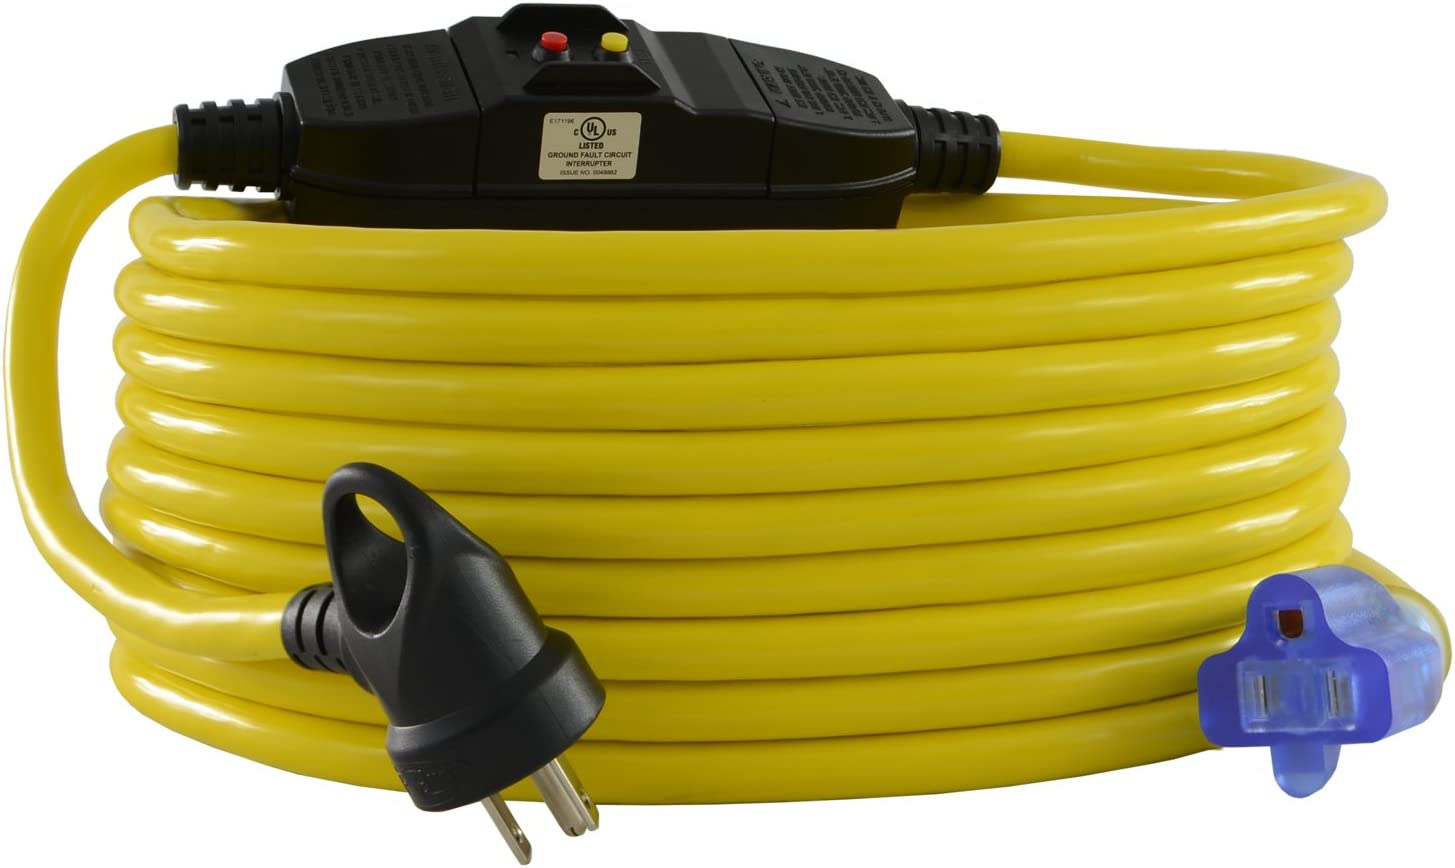 Conntek 20251-025-IG GFCI Extension Cord, 25-Feet, Yellow